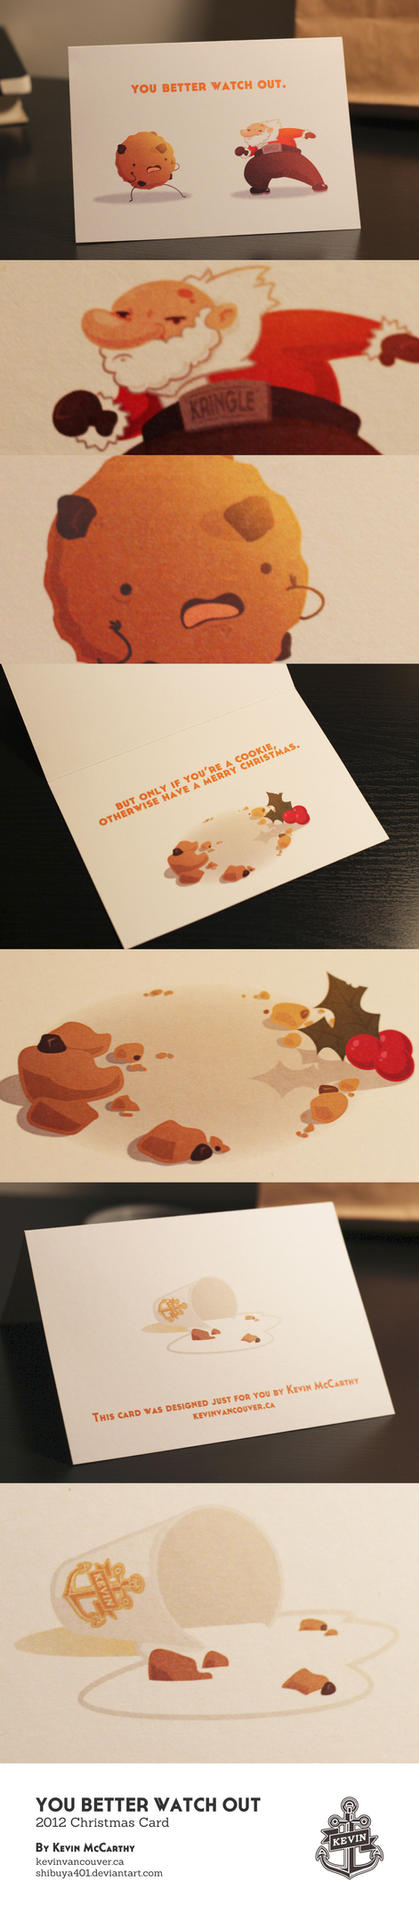 2012 Christmas Card by SHIBUYA401